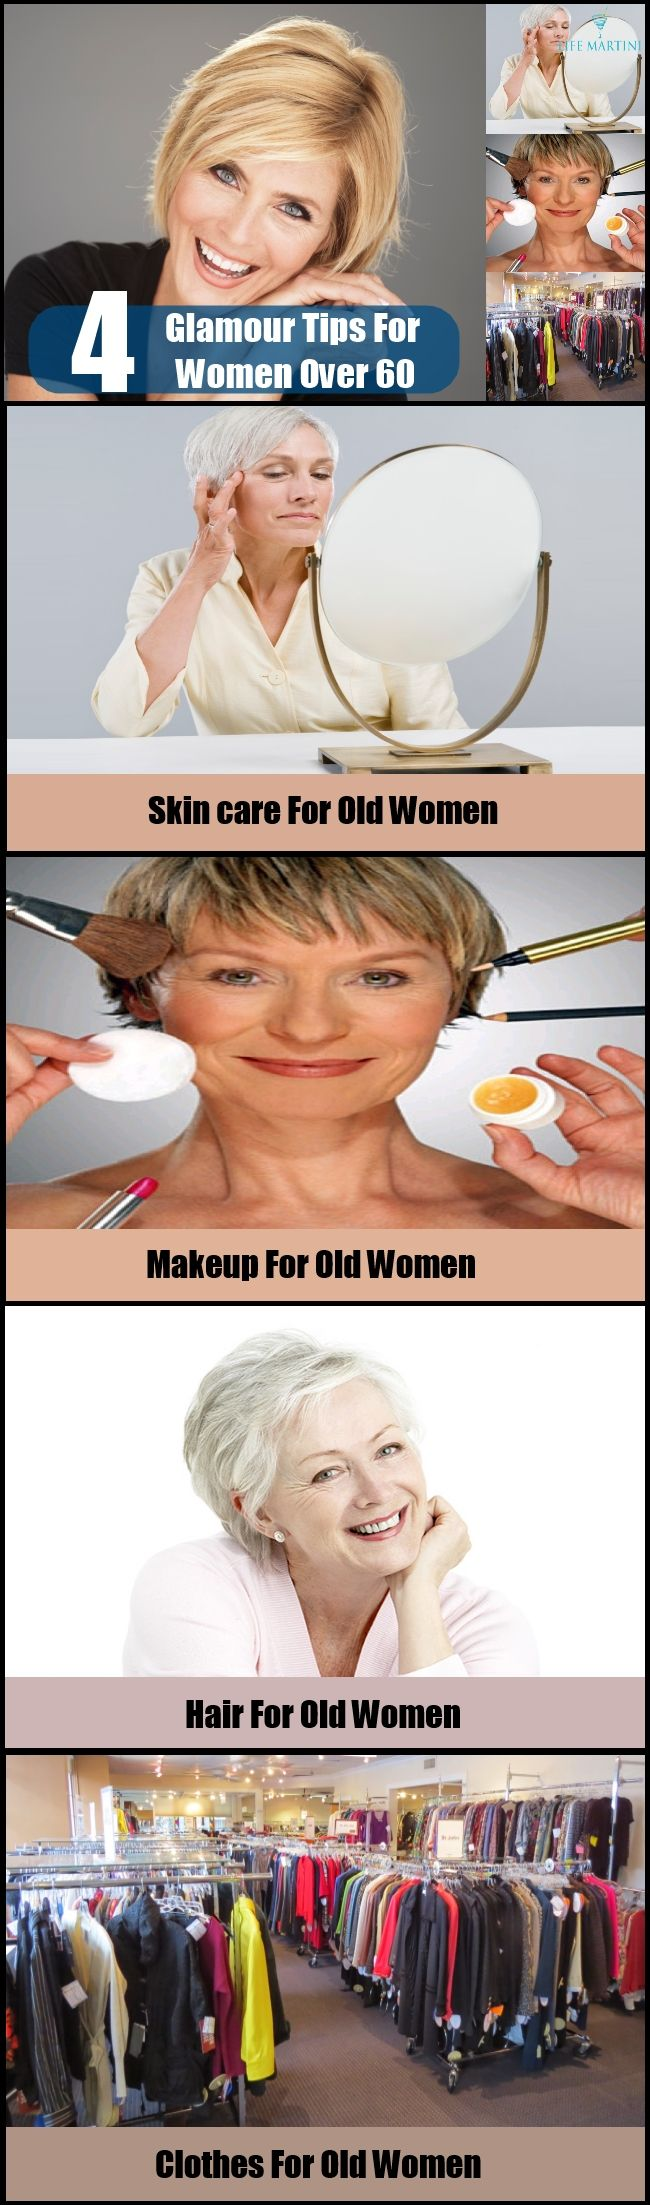 192 best skin care images on pinterest | faces, beautiful women and